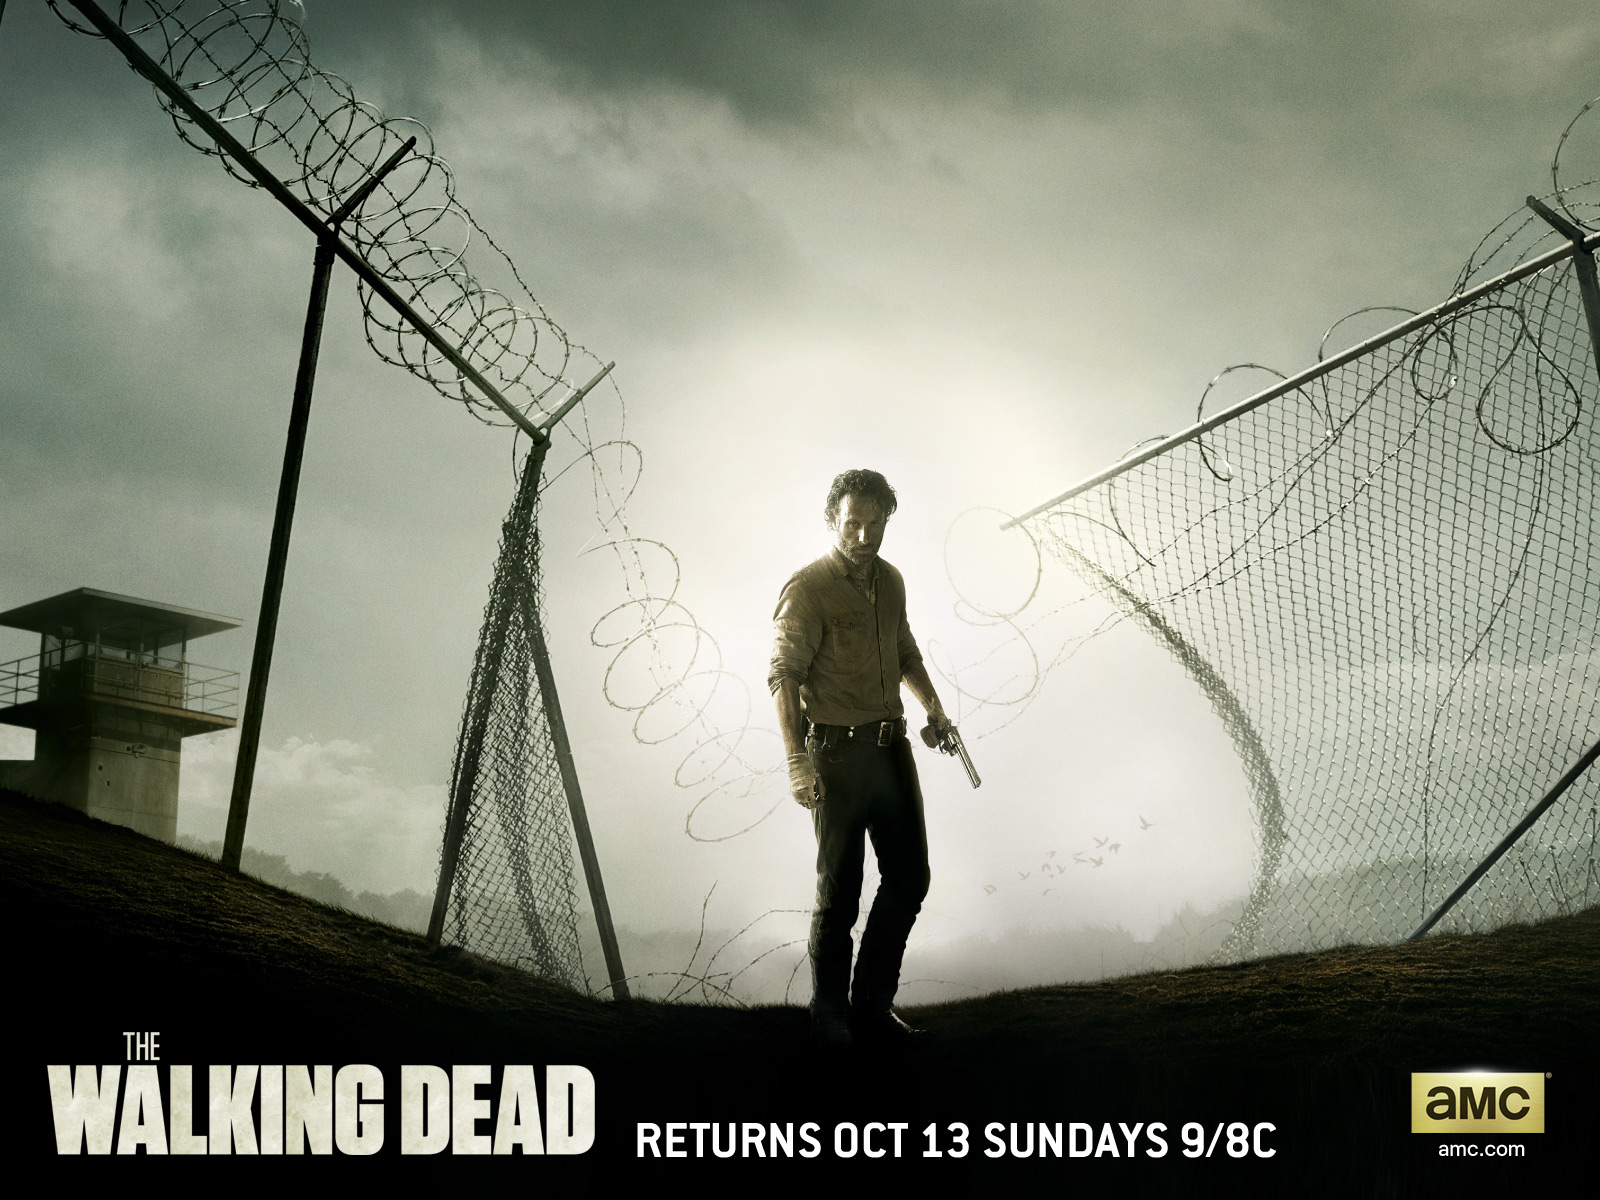 The walking dead season 4 wallpapers the walking dead season 4 image the walking dead season 4 wallpapers and stock photos voltagebd Gallery